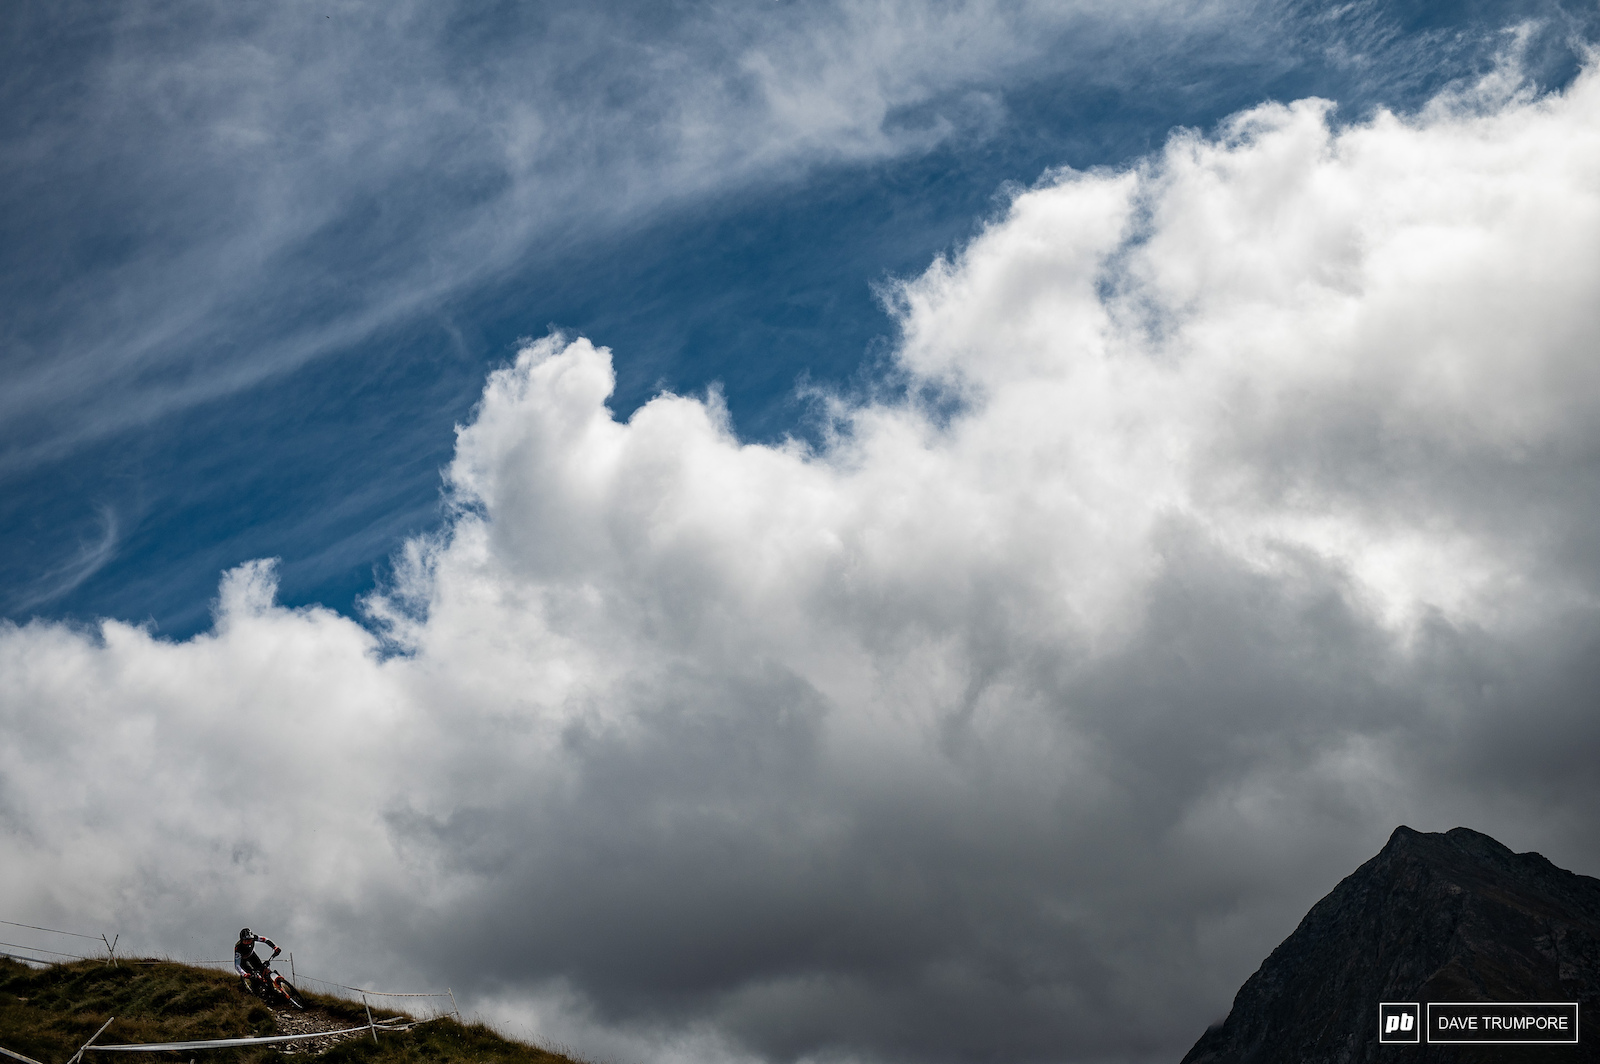 Remi Gauvin against the dramatic sky